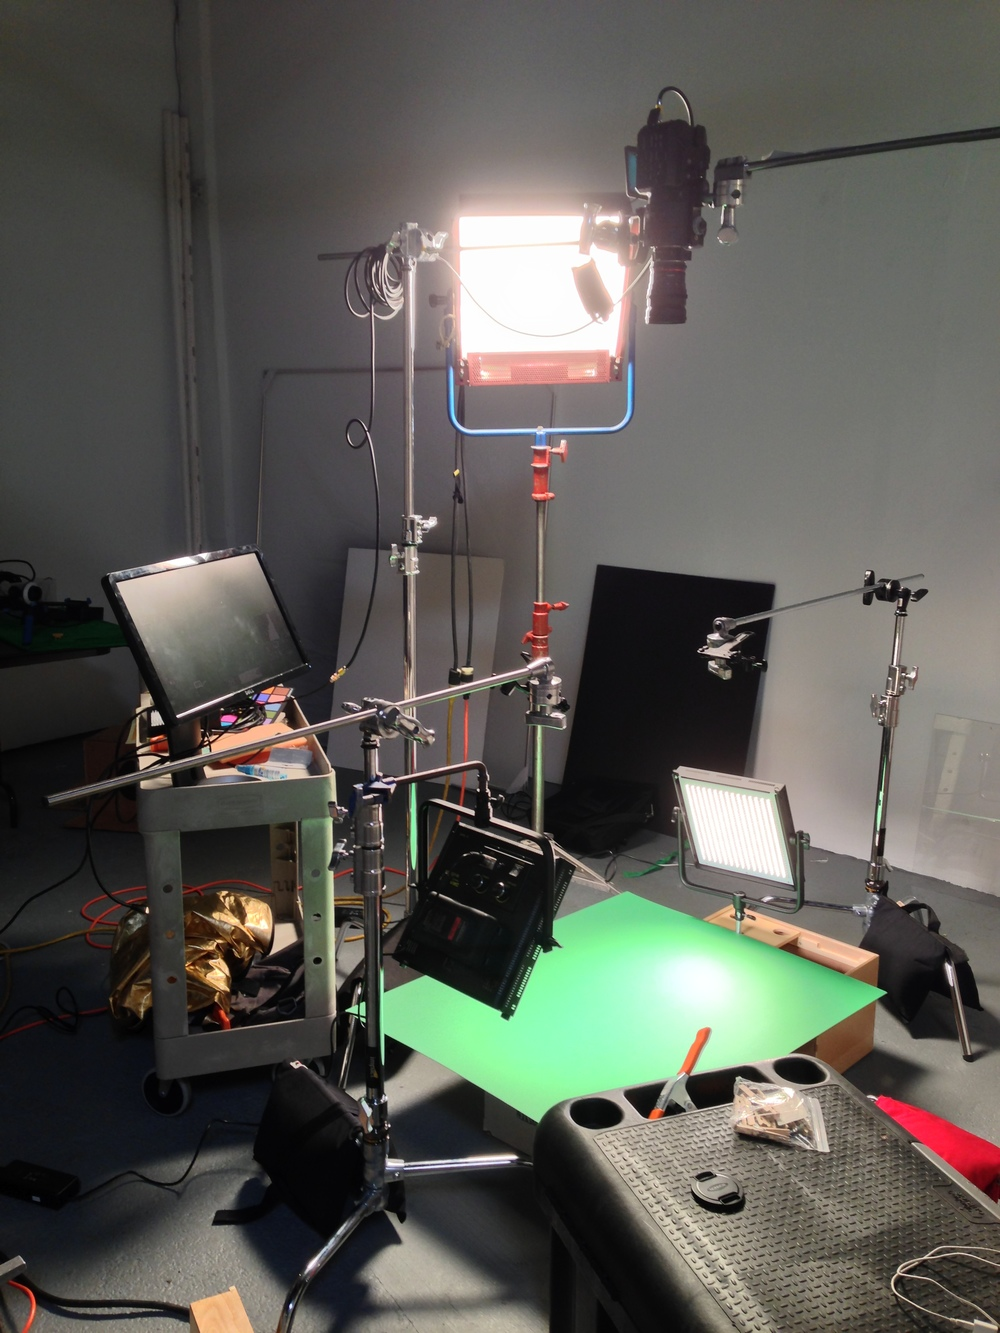 Lighting rig for hand shots